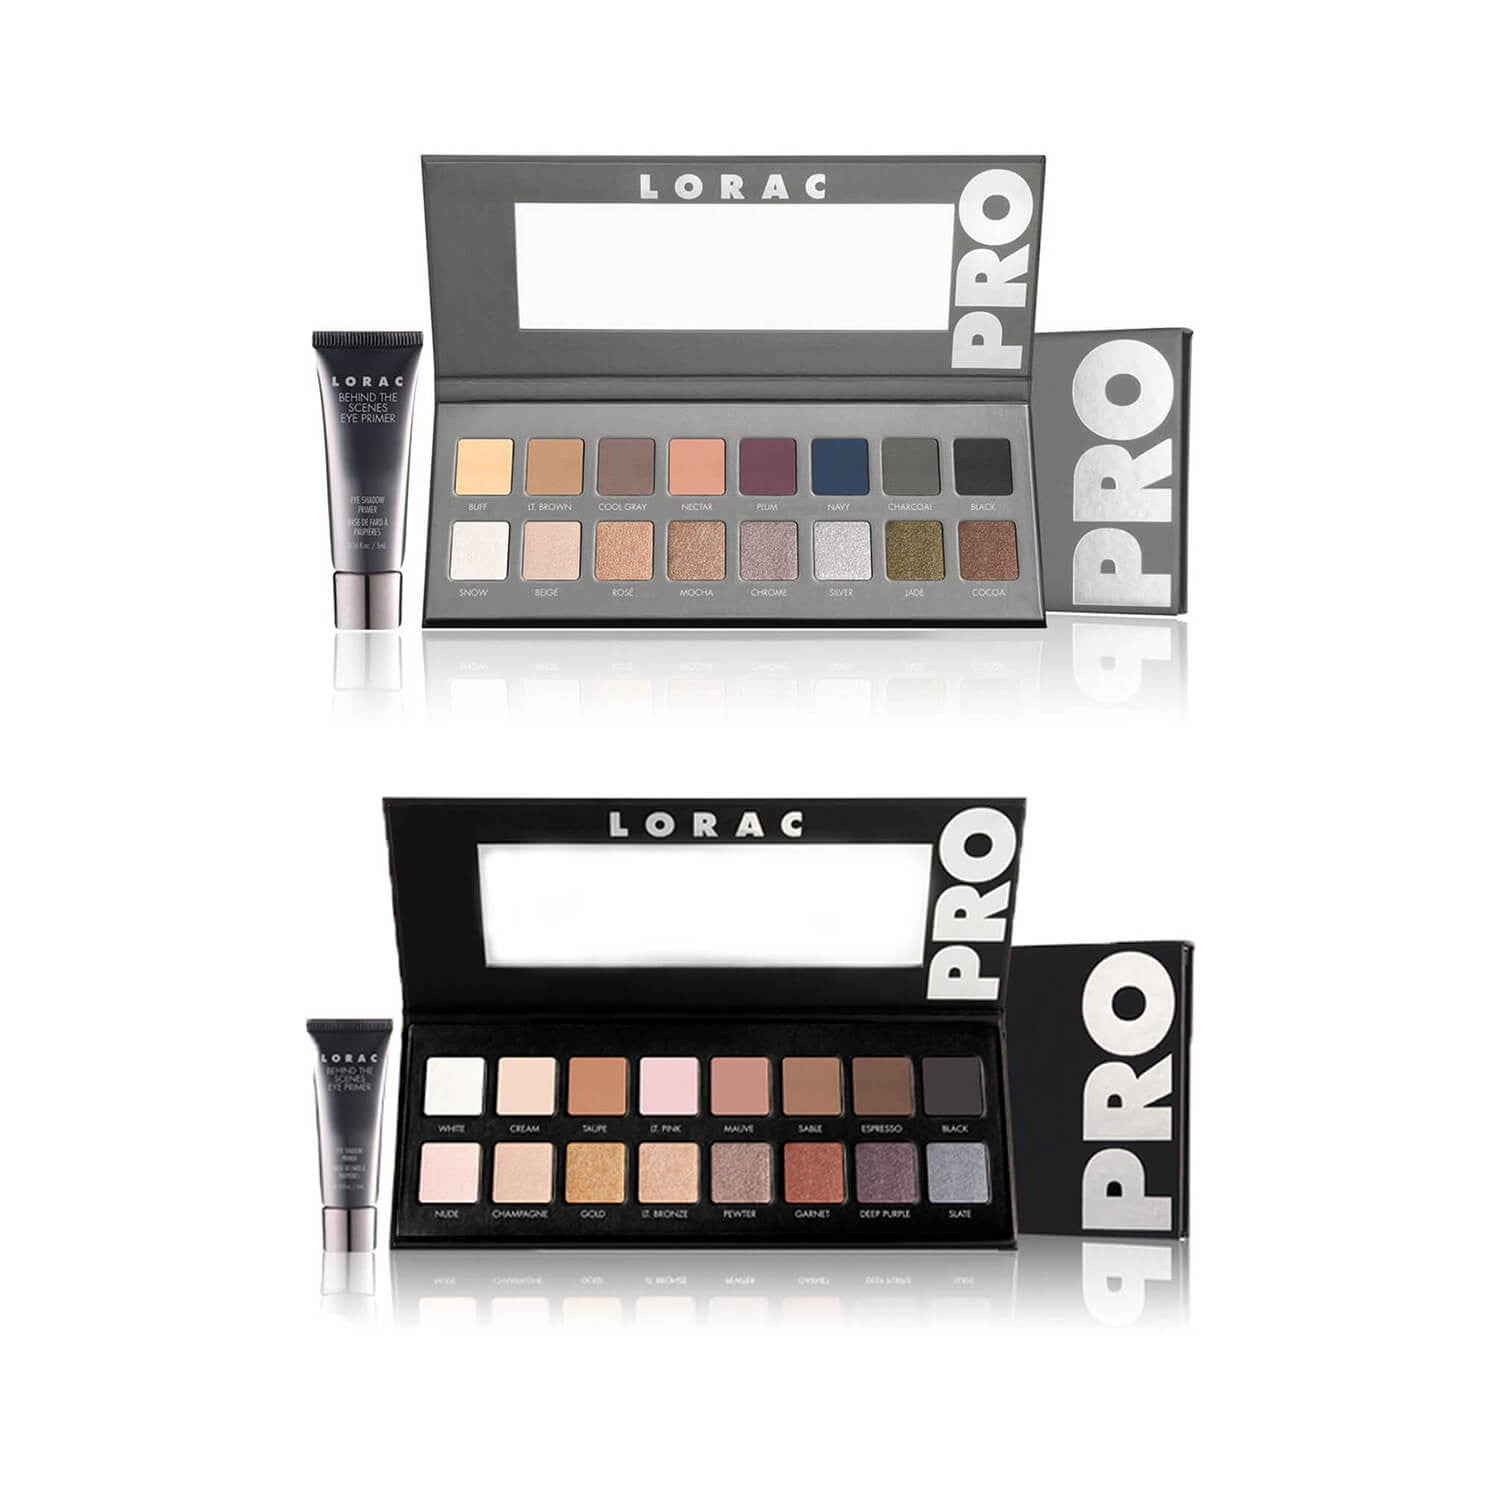 LORAC PRO PALETTE 1 and 2 DUO